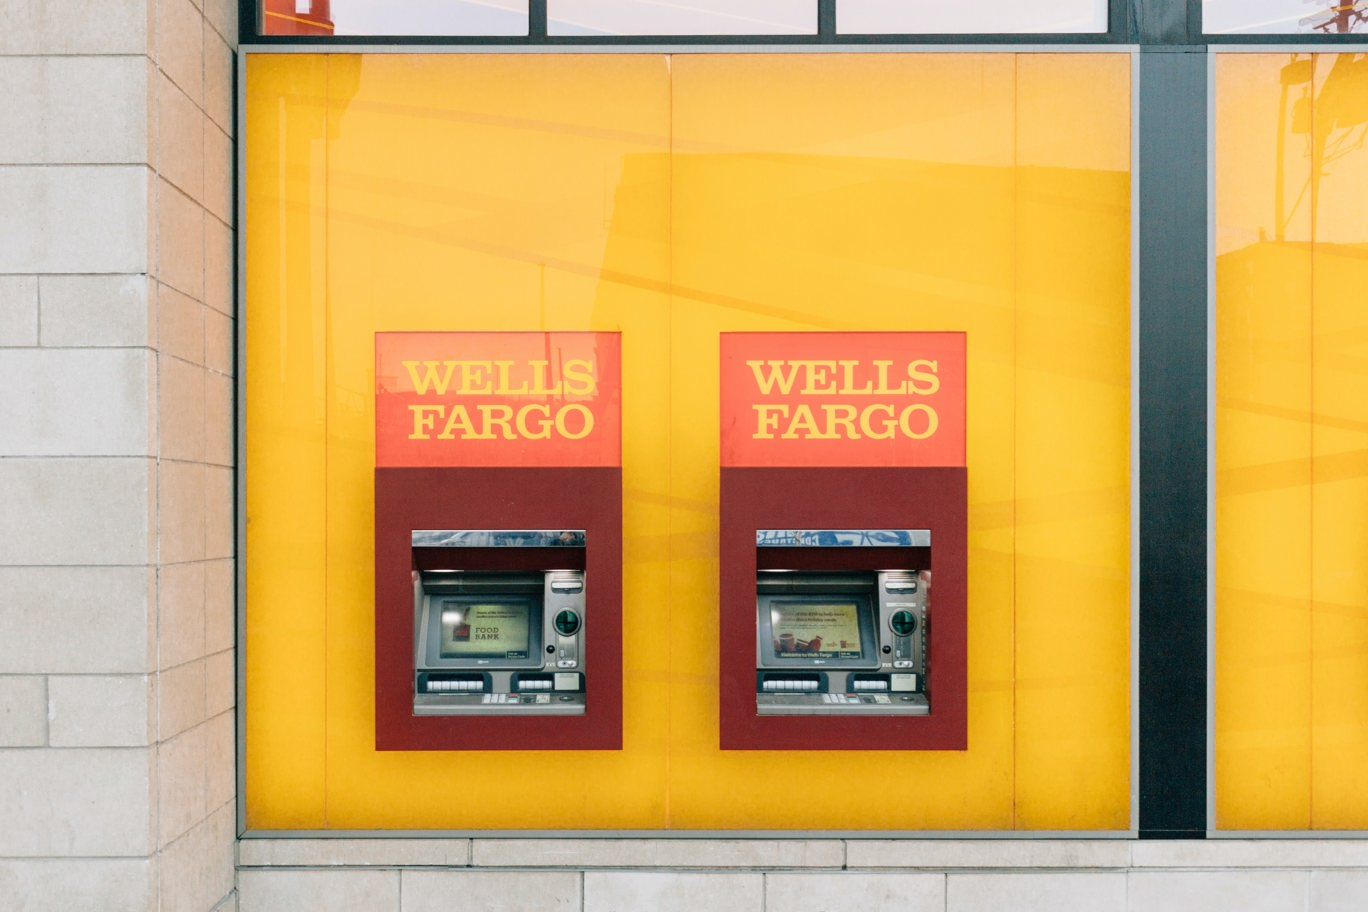 Wells Fargo WFC stock news and analysis